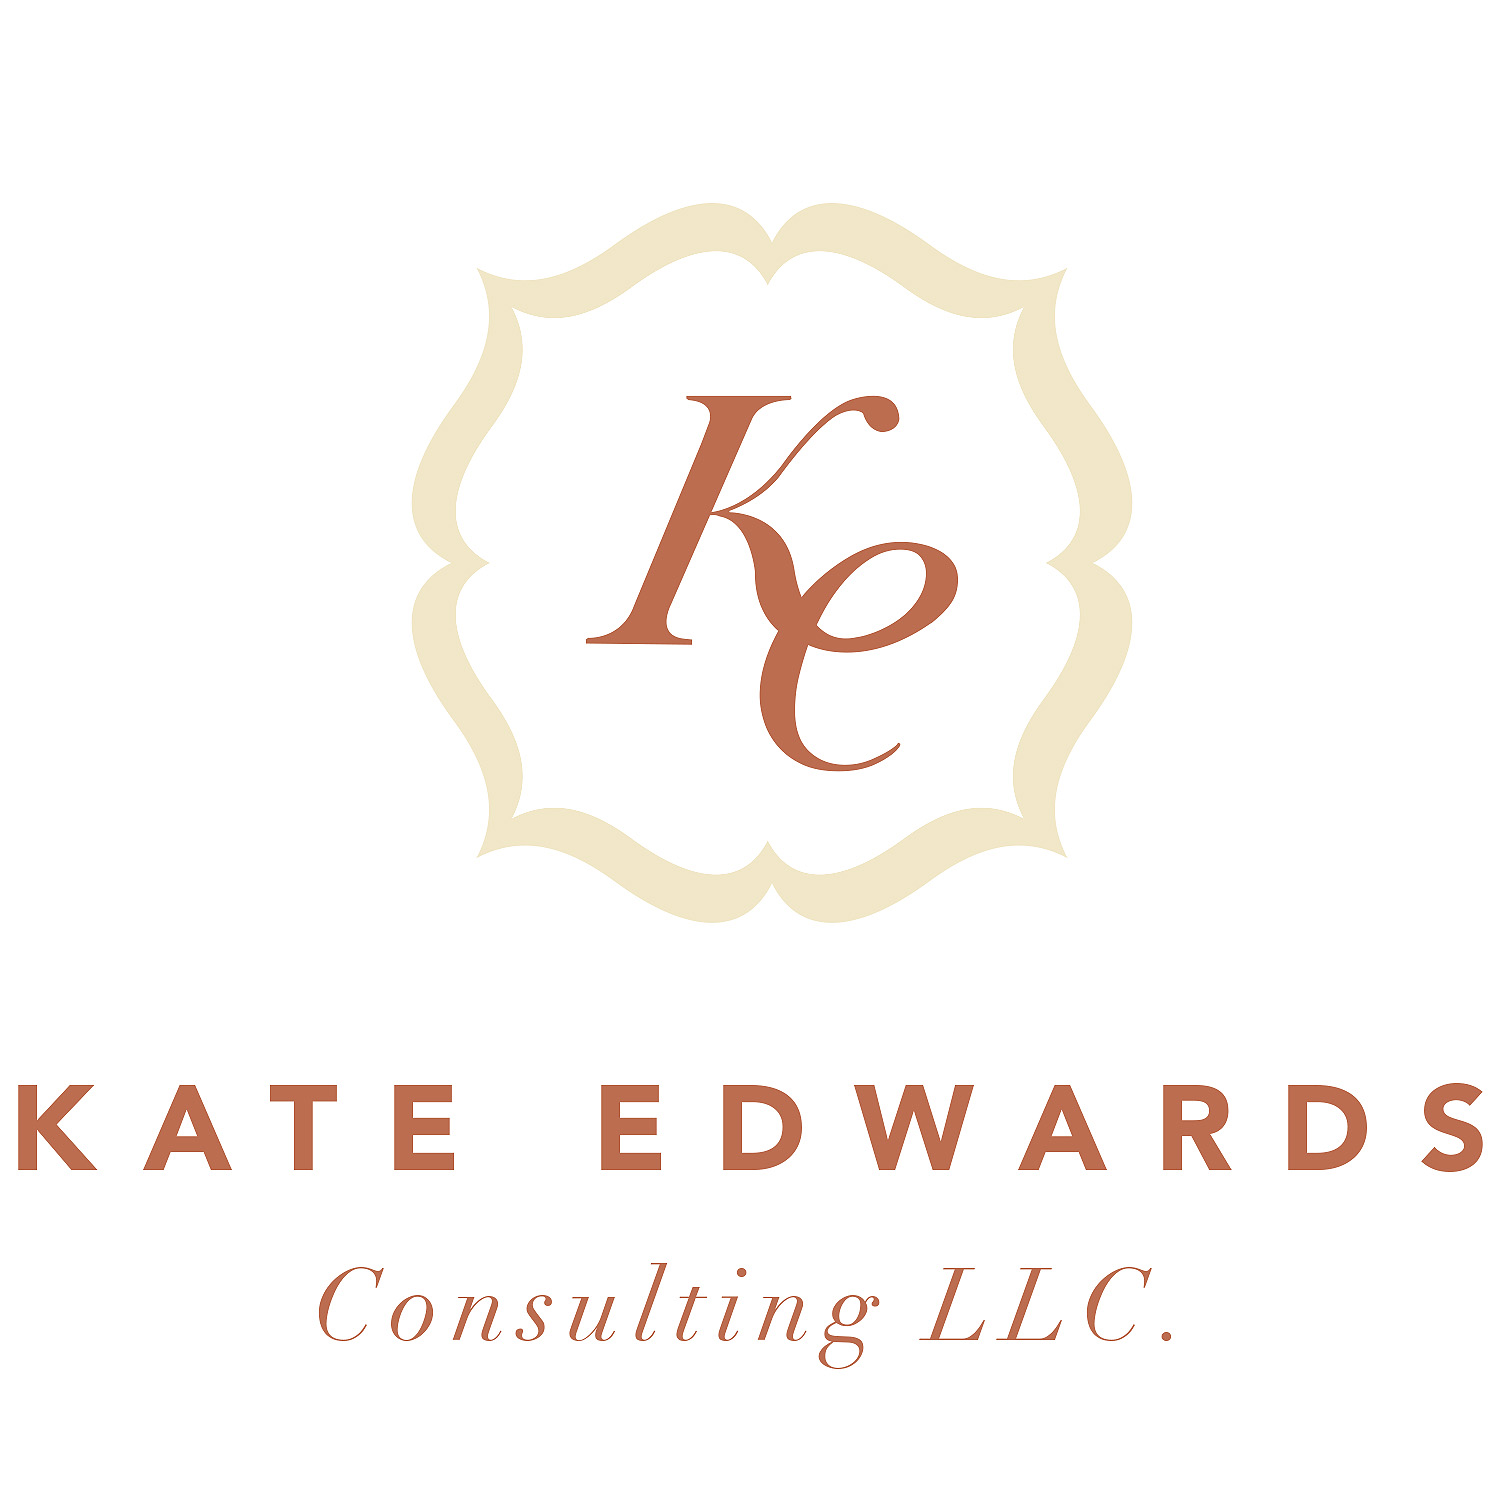 Kate Edwards Consulting LLC.